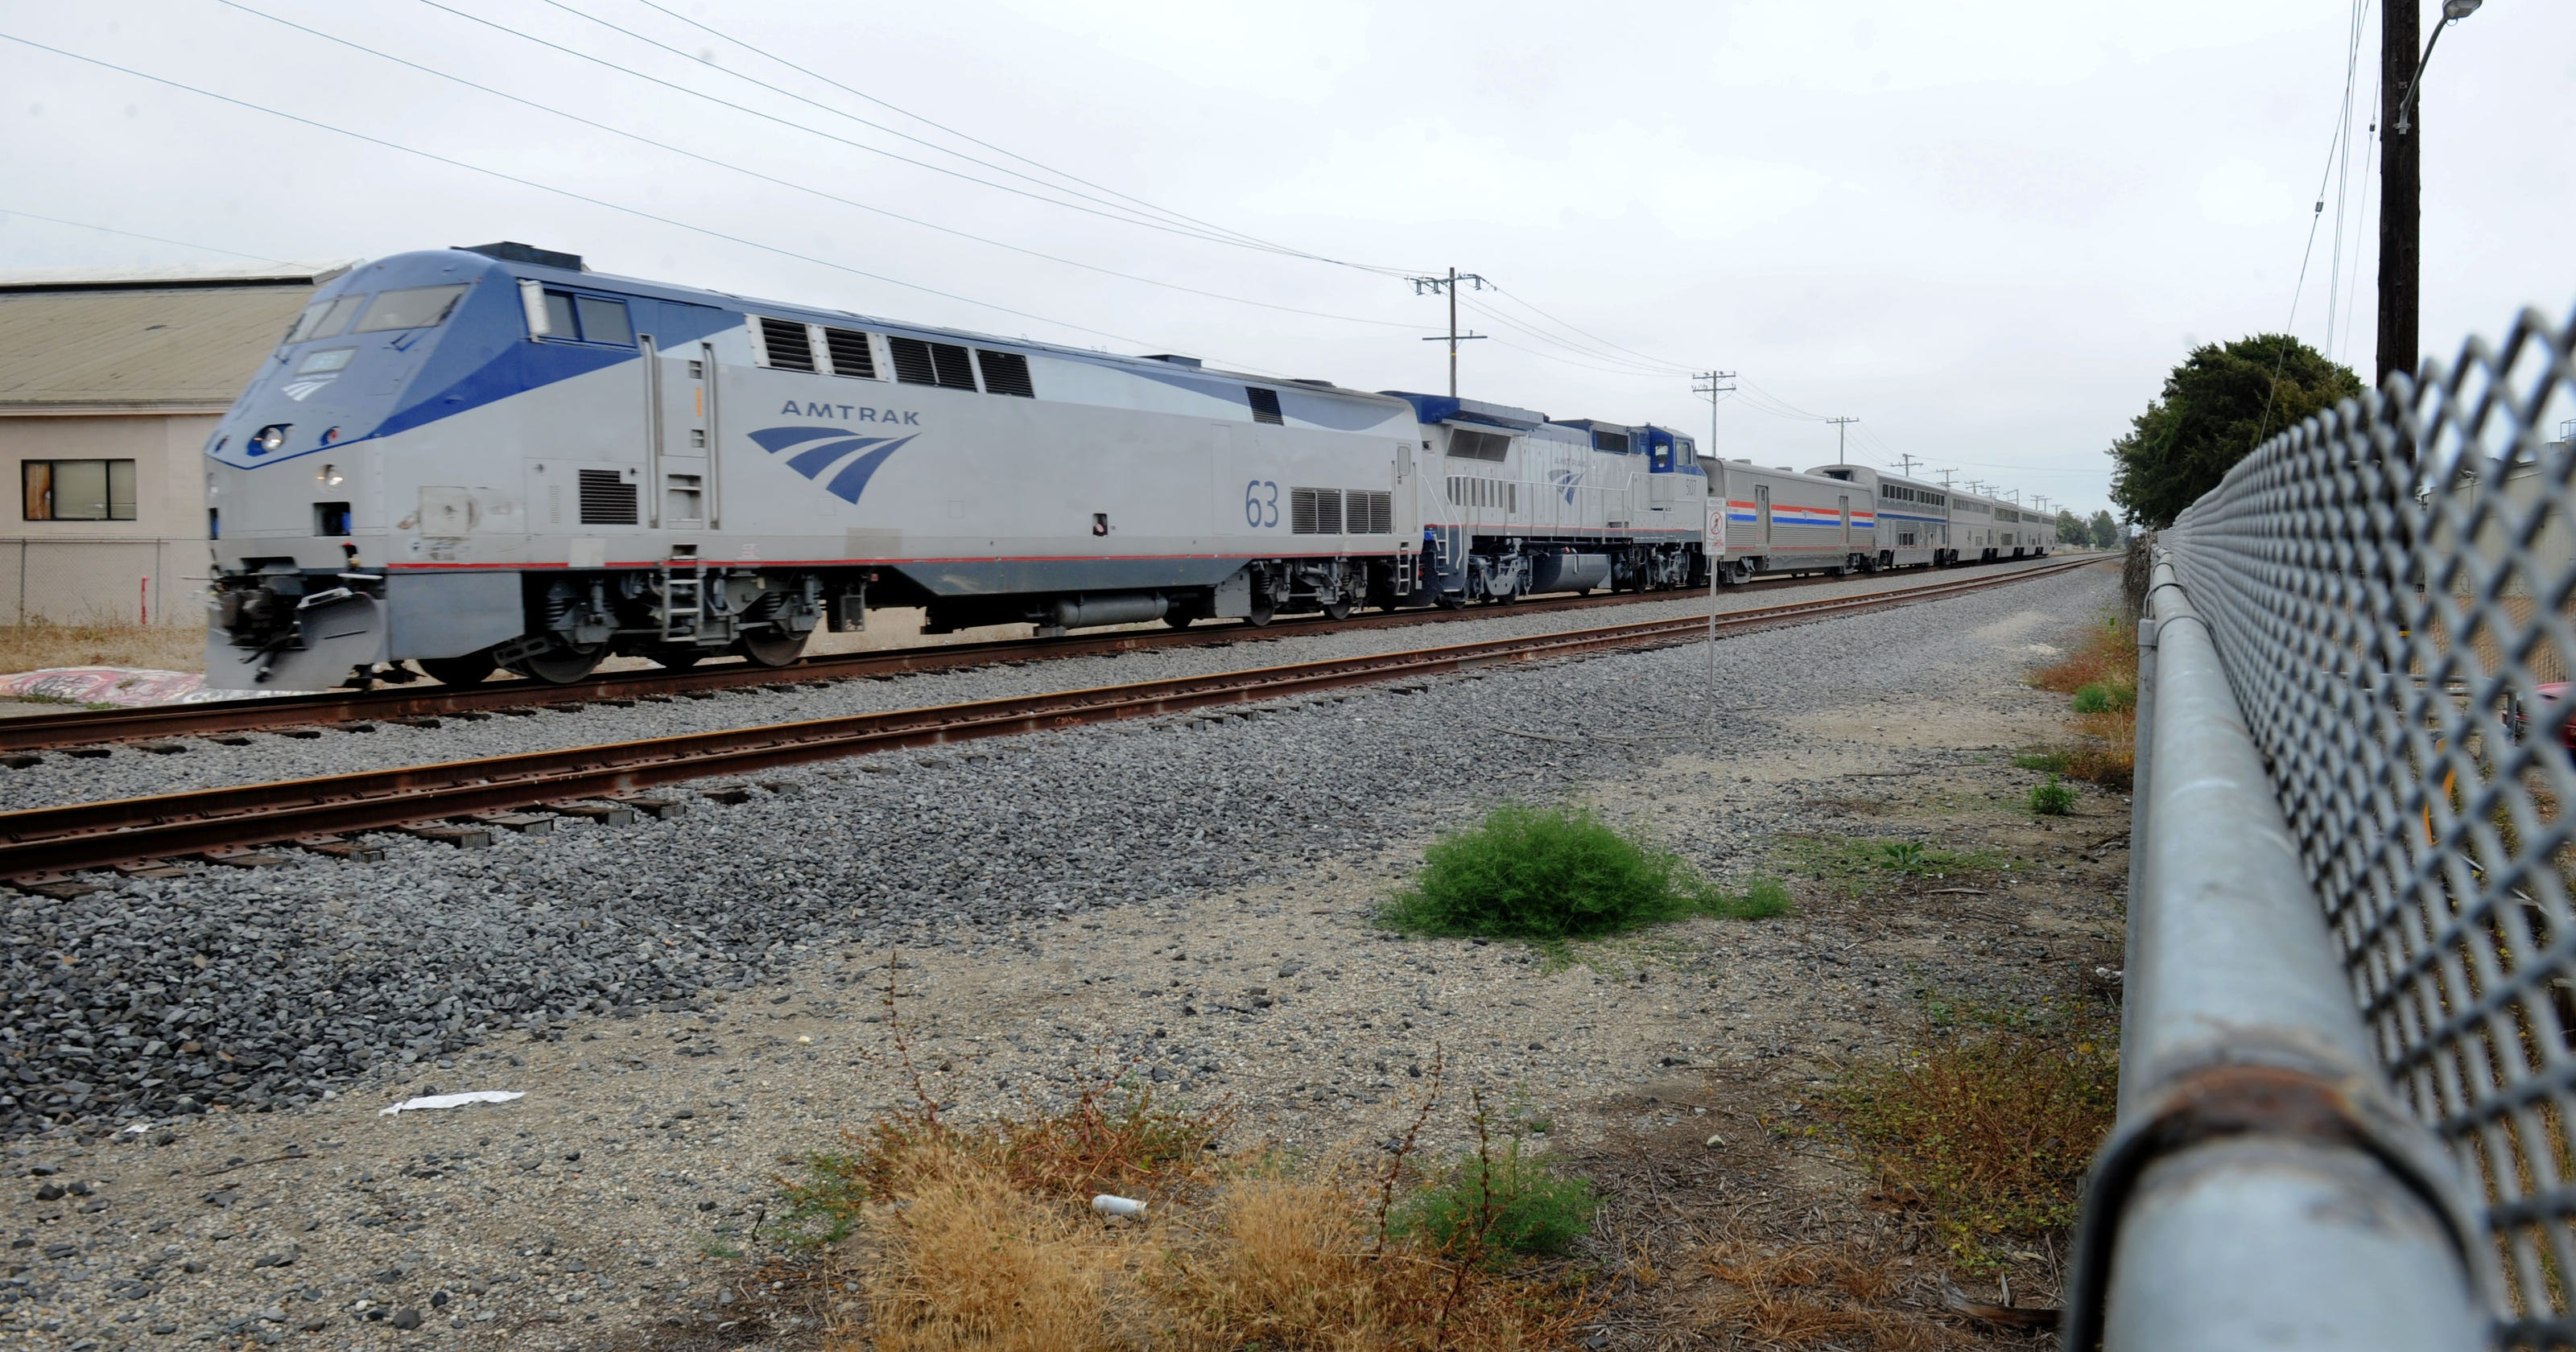 Man on roof of Amtrak train arrested in Ventura